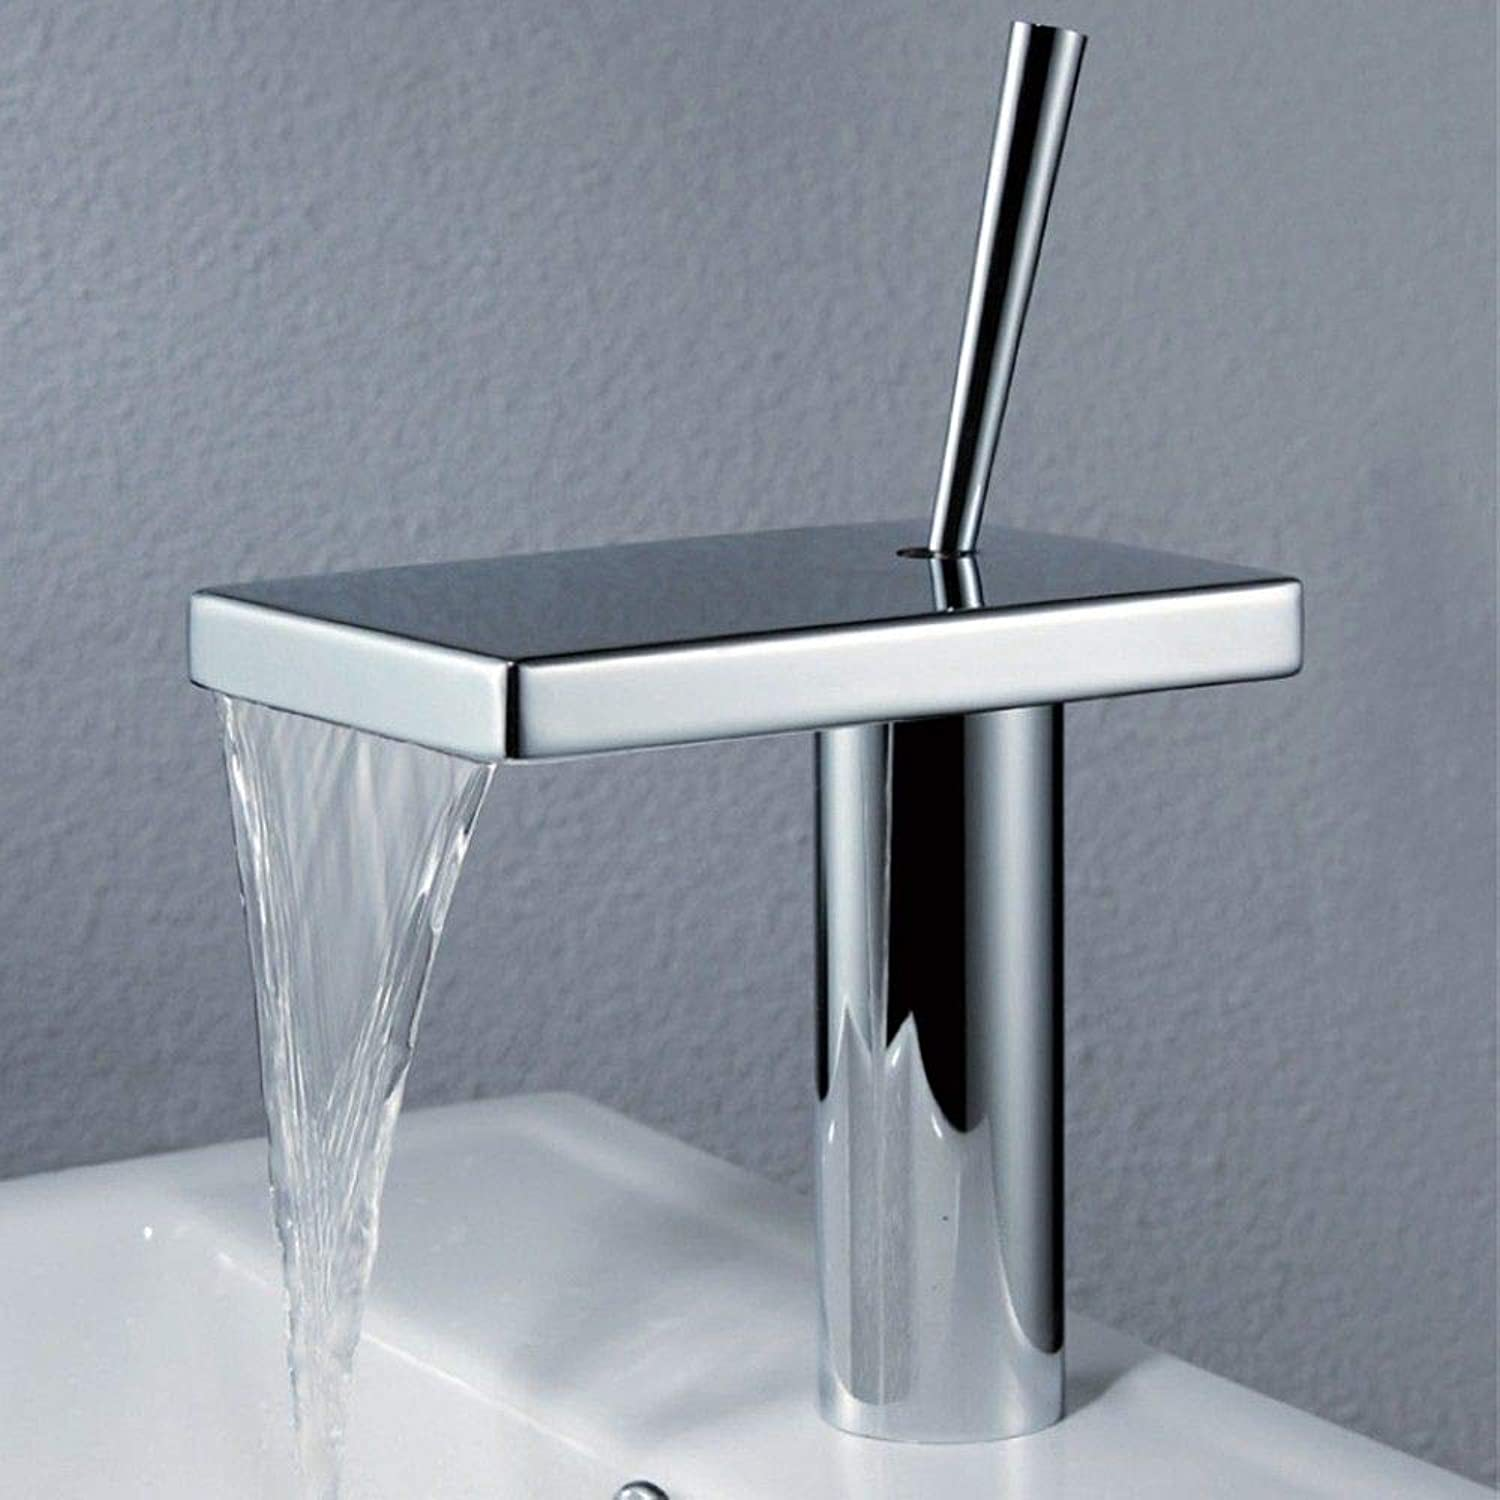 NewBorn Faucet Kitchen Or Bathroom Sink Mixer Tap Water Tap Hot And Cold Black Toilet Antique Sink Water Tap B